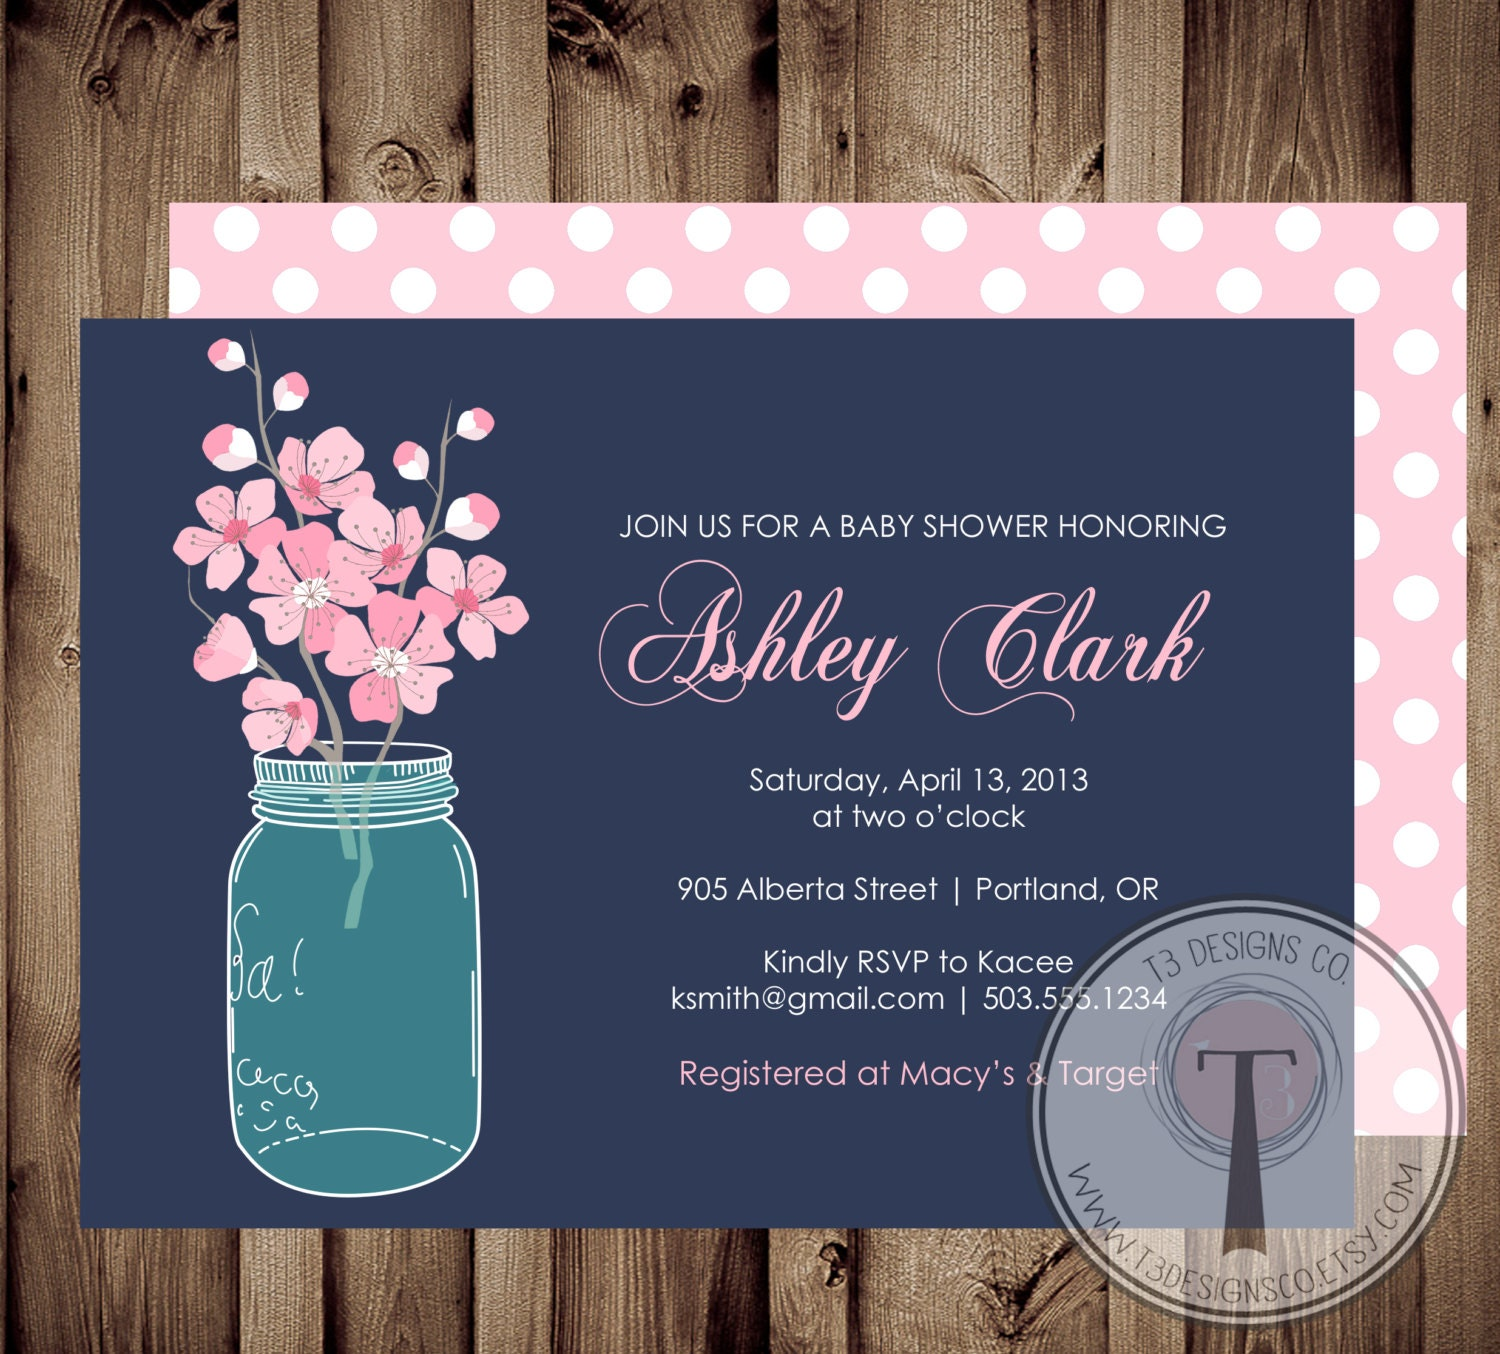 Baby girl baby shower invitation cherry blossoms baby shower baby baby girl baby shower invitation cherry blossoms baby shower baby shower invite mason jar baby showerflowers cherry blossoms filmwisefo